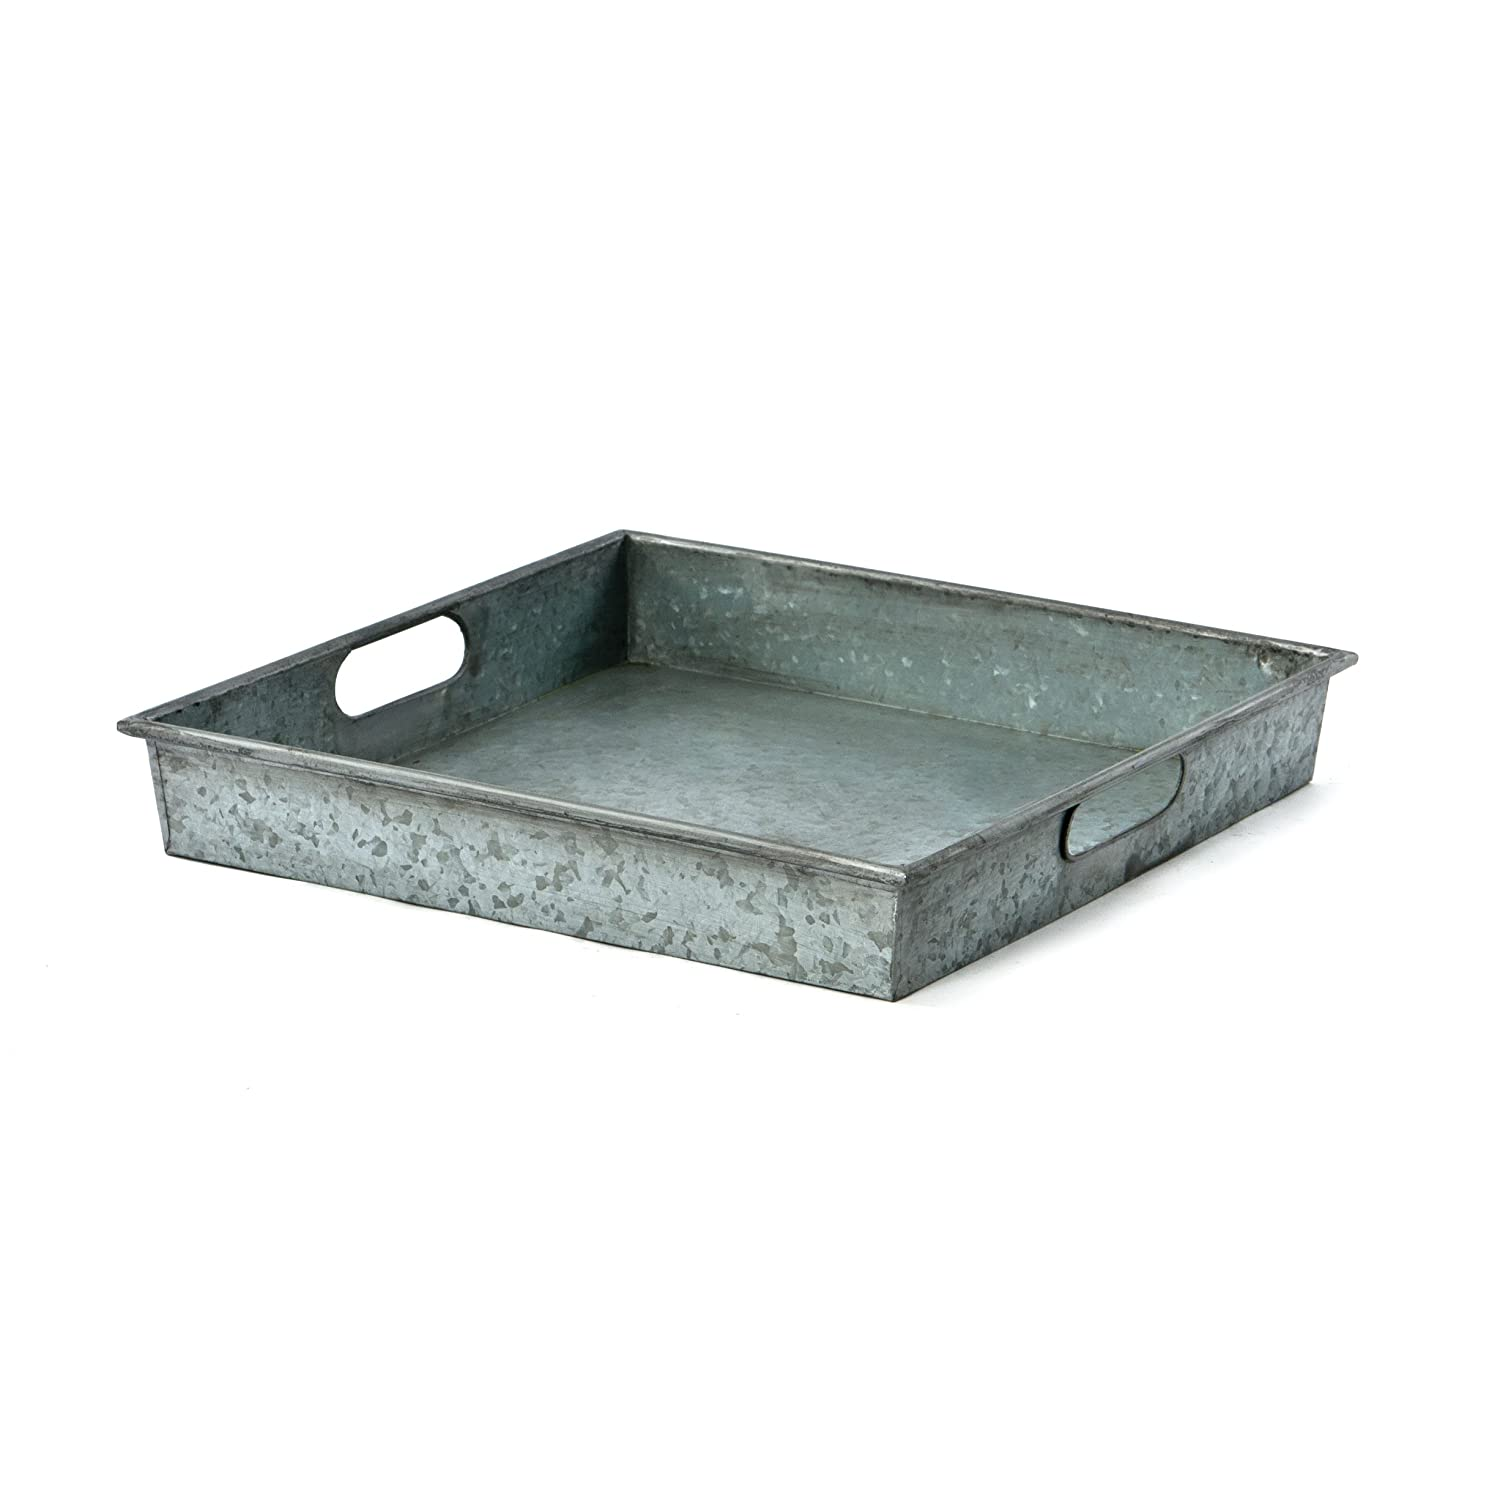 Skalny 82811S 15 D X 2.5 Square Galvanized Tin Tray with Handle